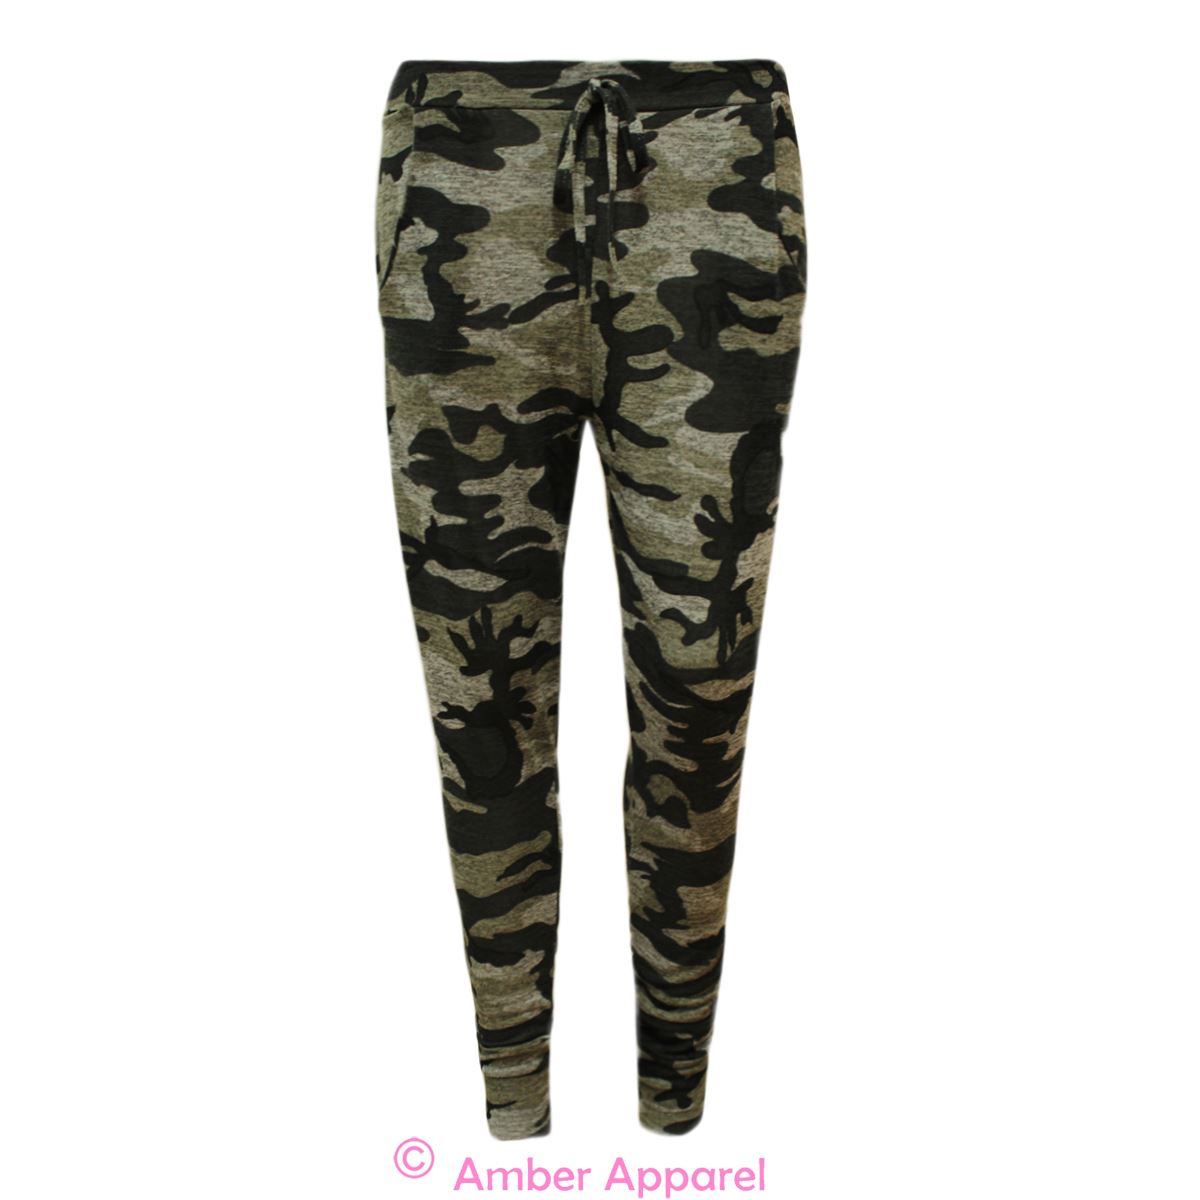 Model Exocet Womens Camouflage Harem Jogger Pants In Plus Size At Amazon Womenu2019s Clothing Store